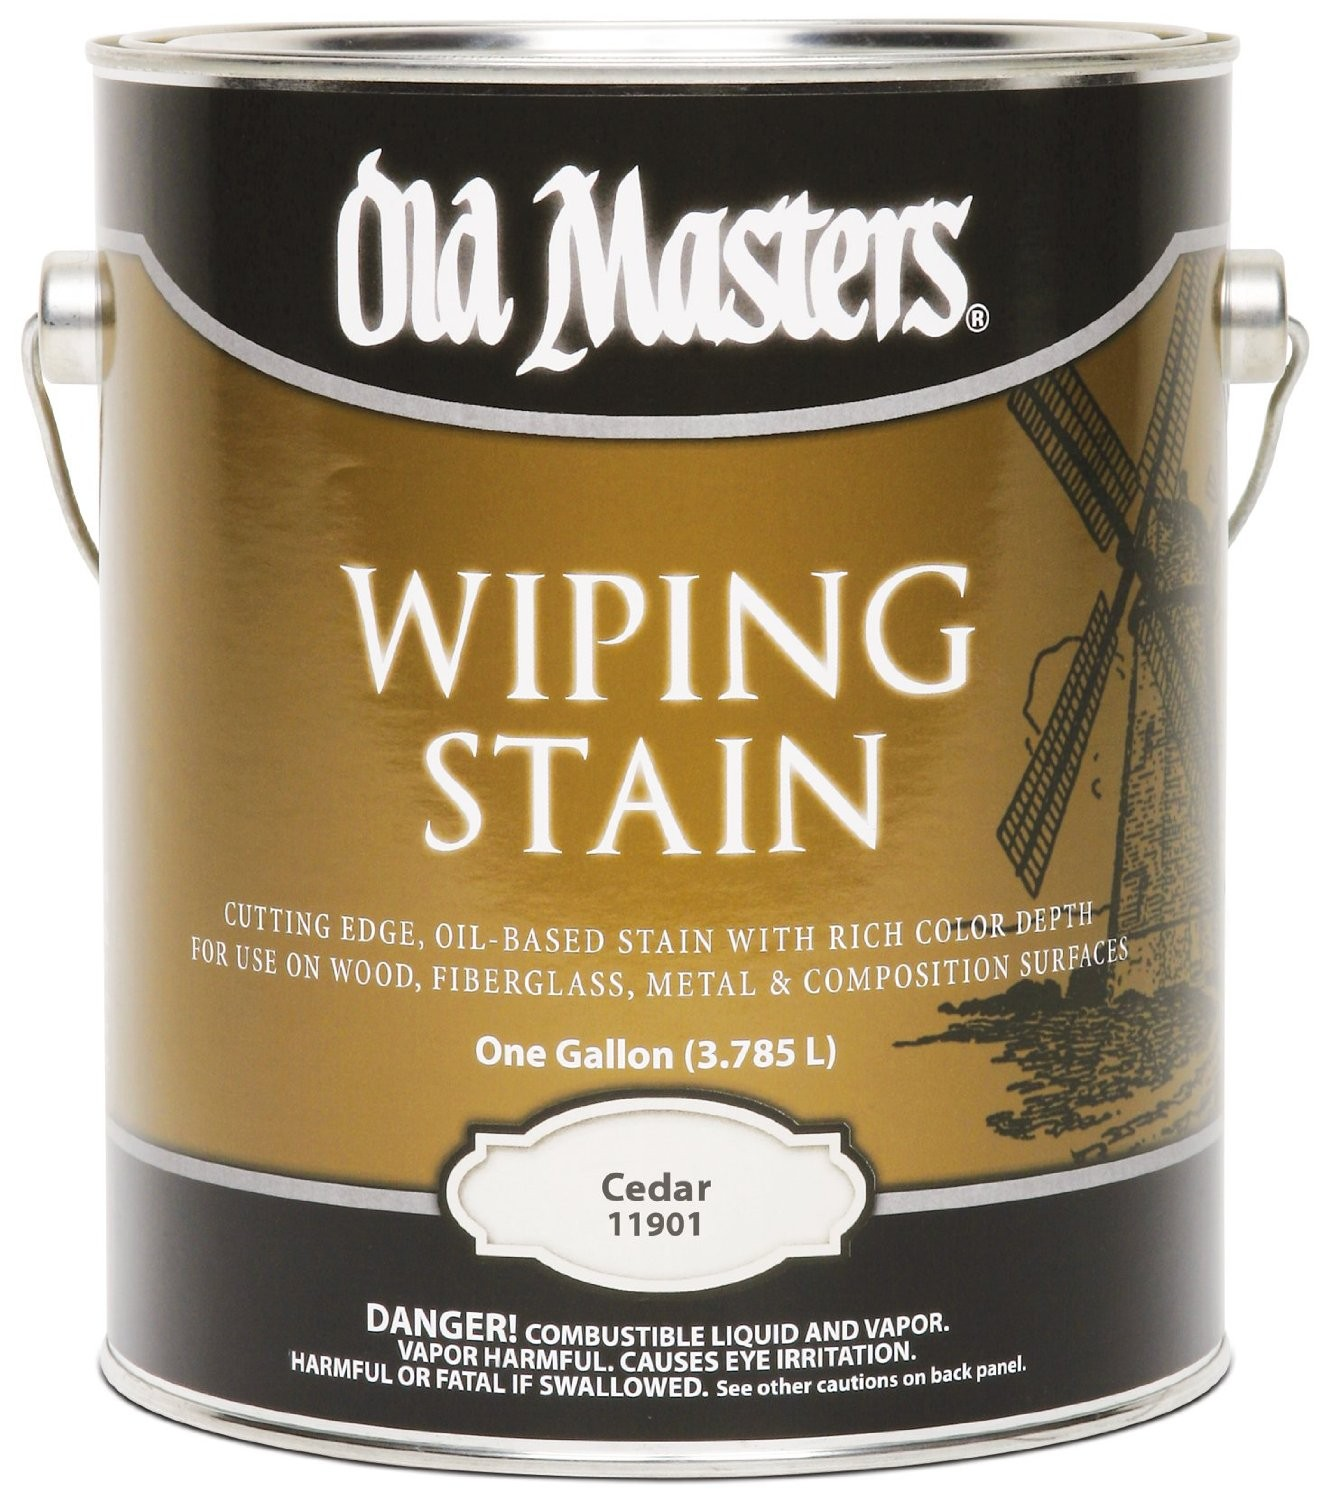 Buy The Old Masters 11901 Wiping Wood Stain, Cedar